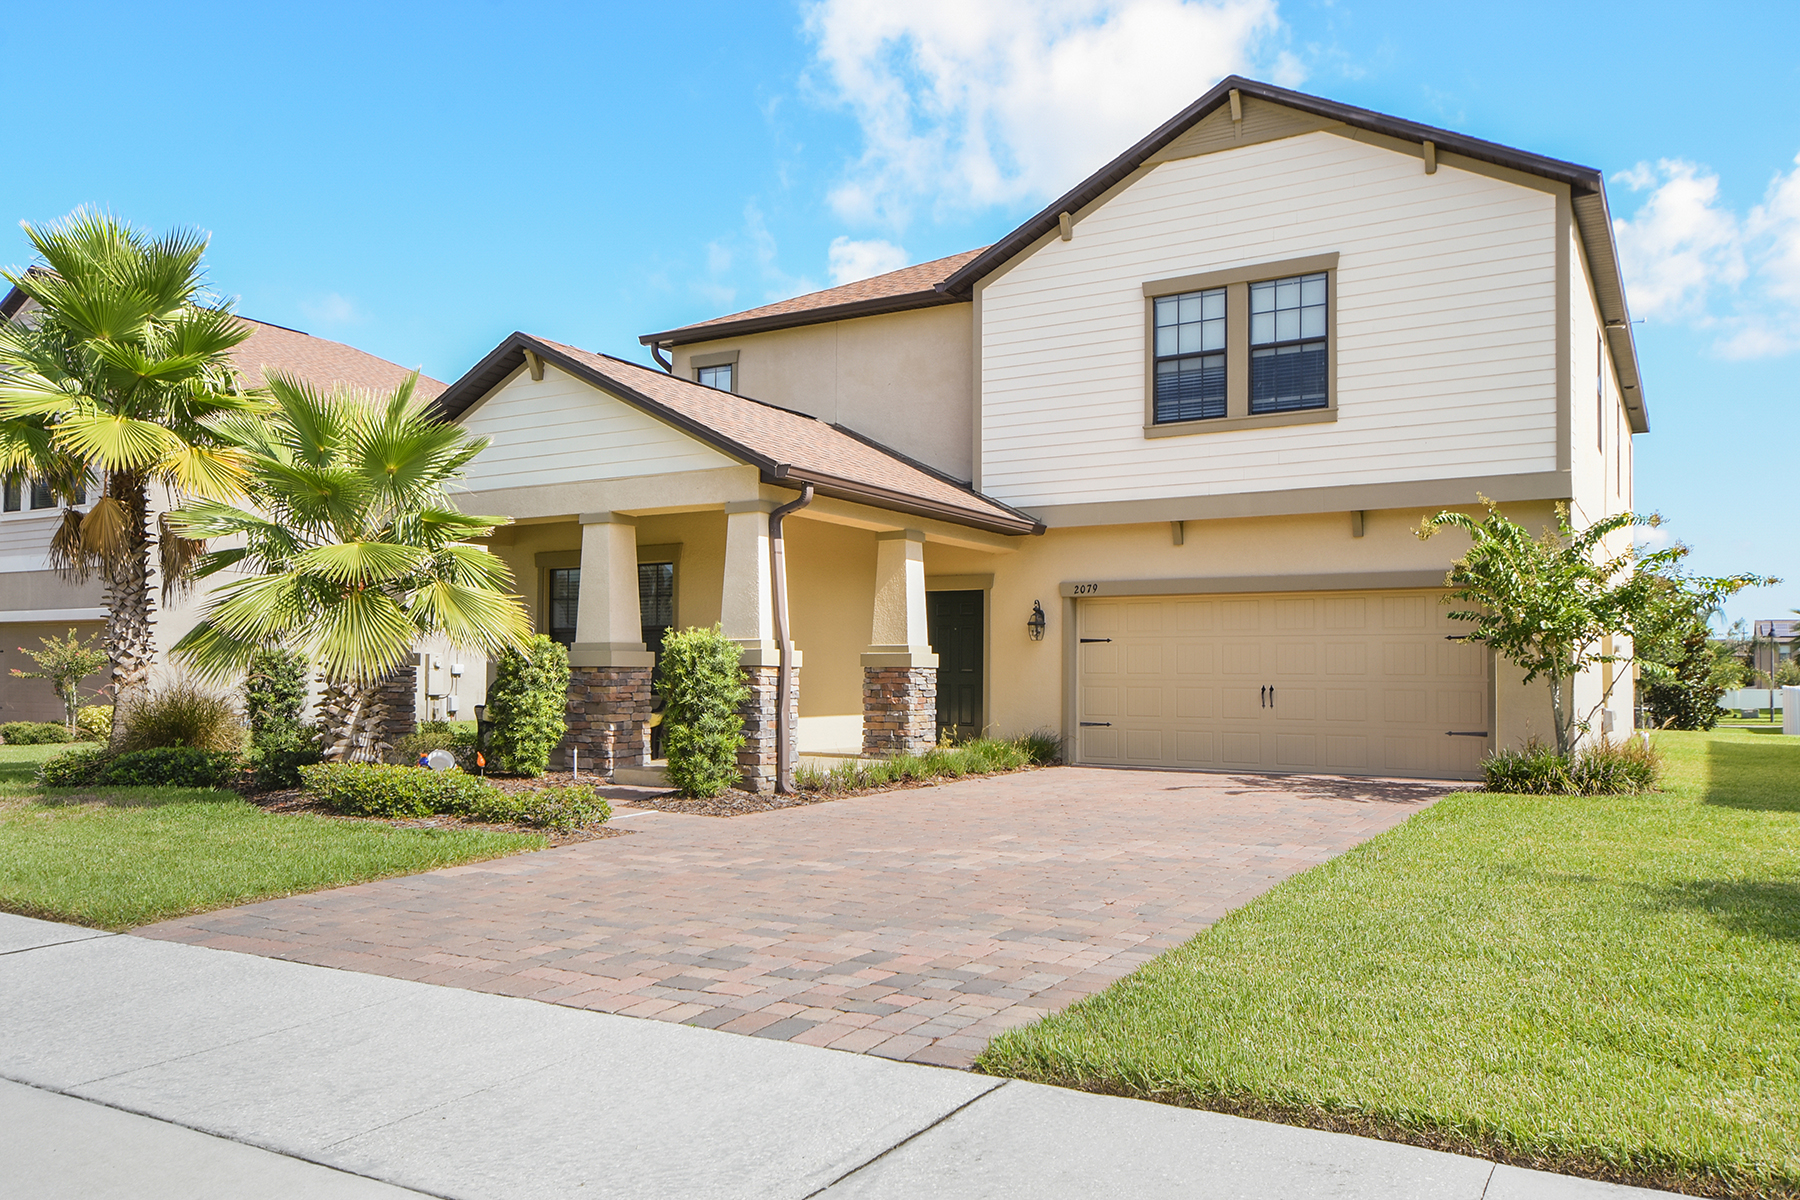 Single Family Homes のために 売買 アット WINTER GARDEN-ORLANDO 2079 Nerva Rd, Winter Garden, フロリダ 34787 アメリカ